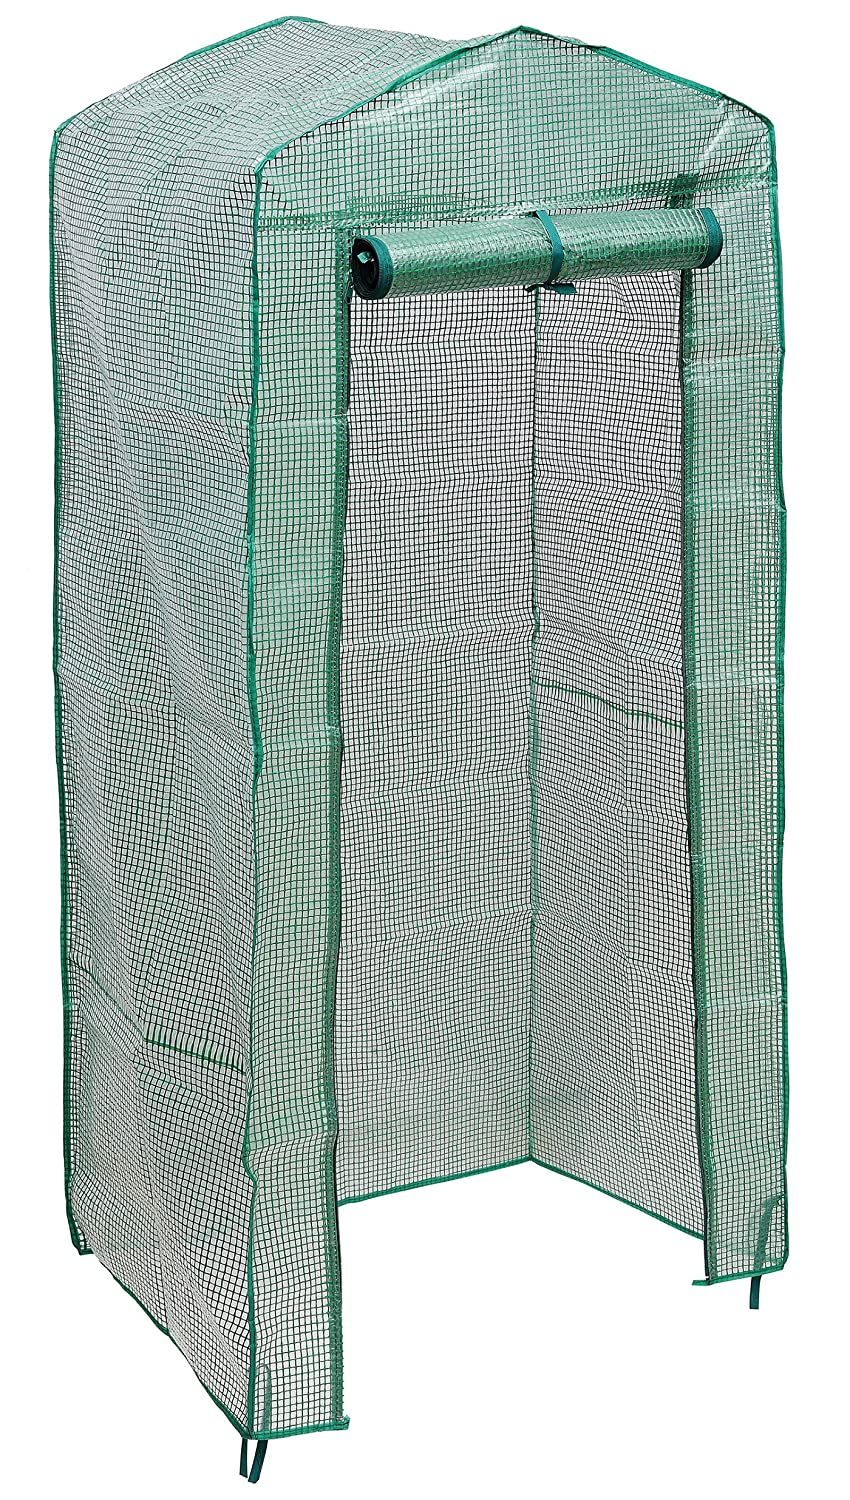 NKTM 4-Tier Mini Greenhouse Replacement Cover,Outdoor Compact Walk-in Greenhouse 27 Long x 18 Wide x 63 High FRAM NOT Include